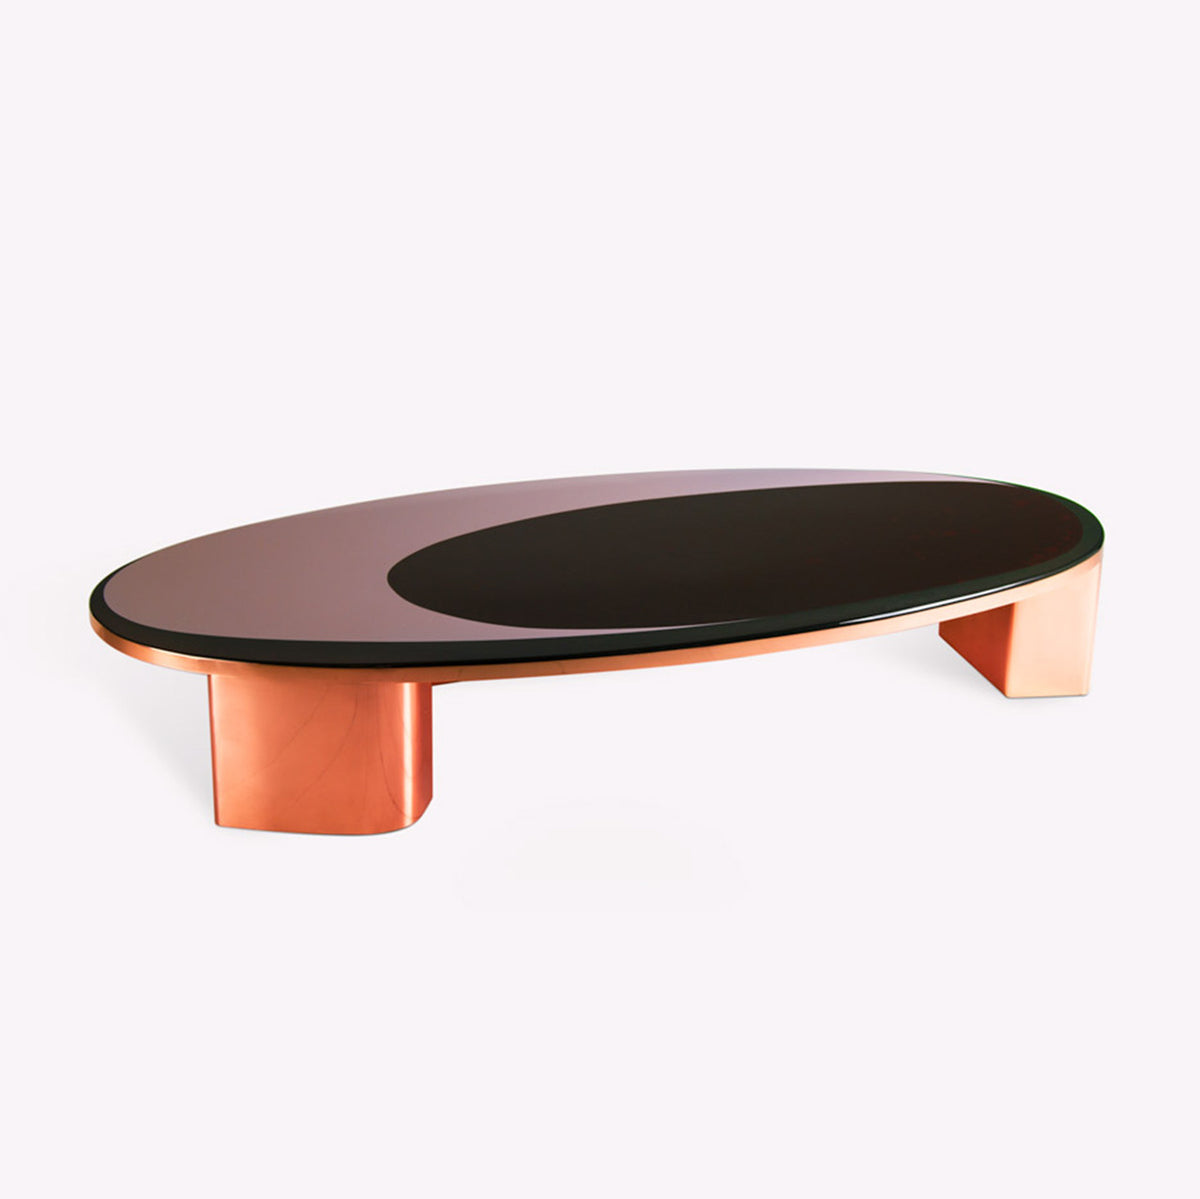 1969, Center and dining tables//Tables à manger et de séjour  - SORS